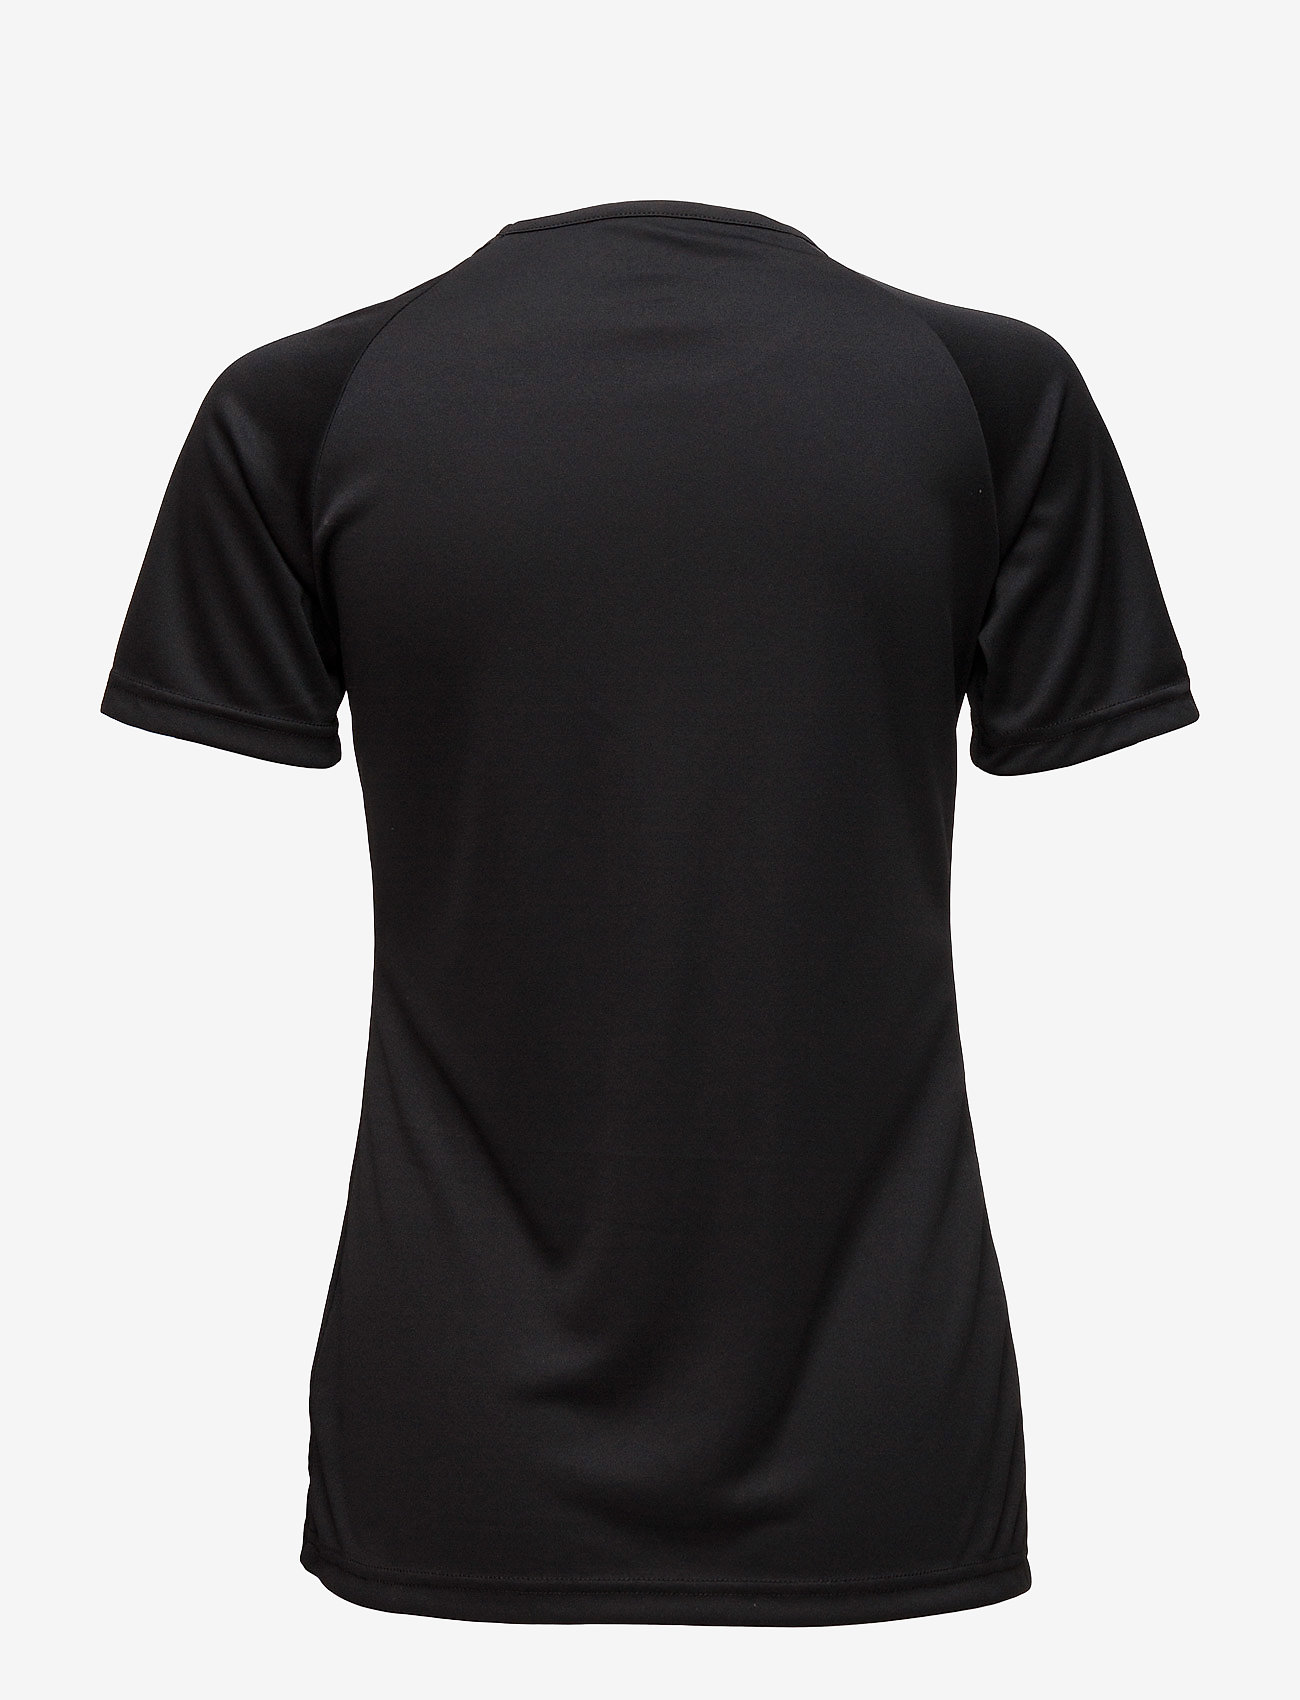 Craft - CRAFT PRIME TEE W VIEW  - t-shirts - black - 1